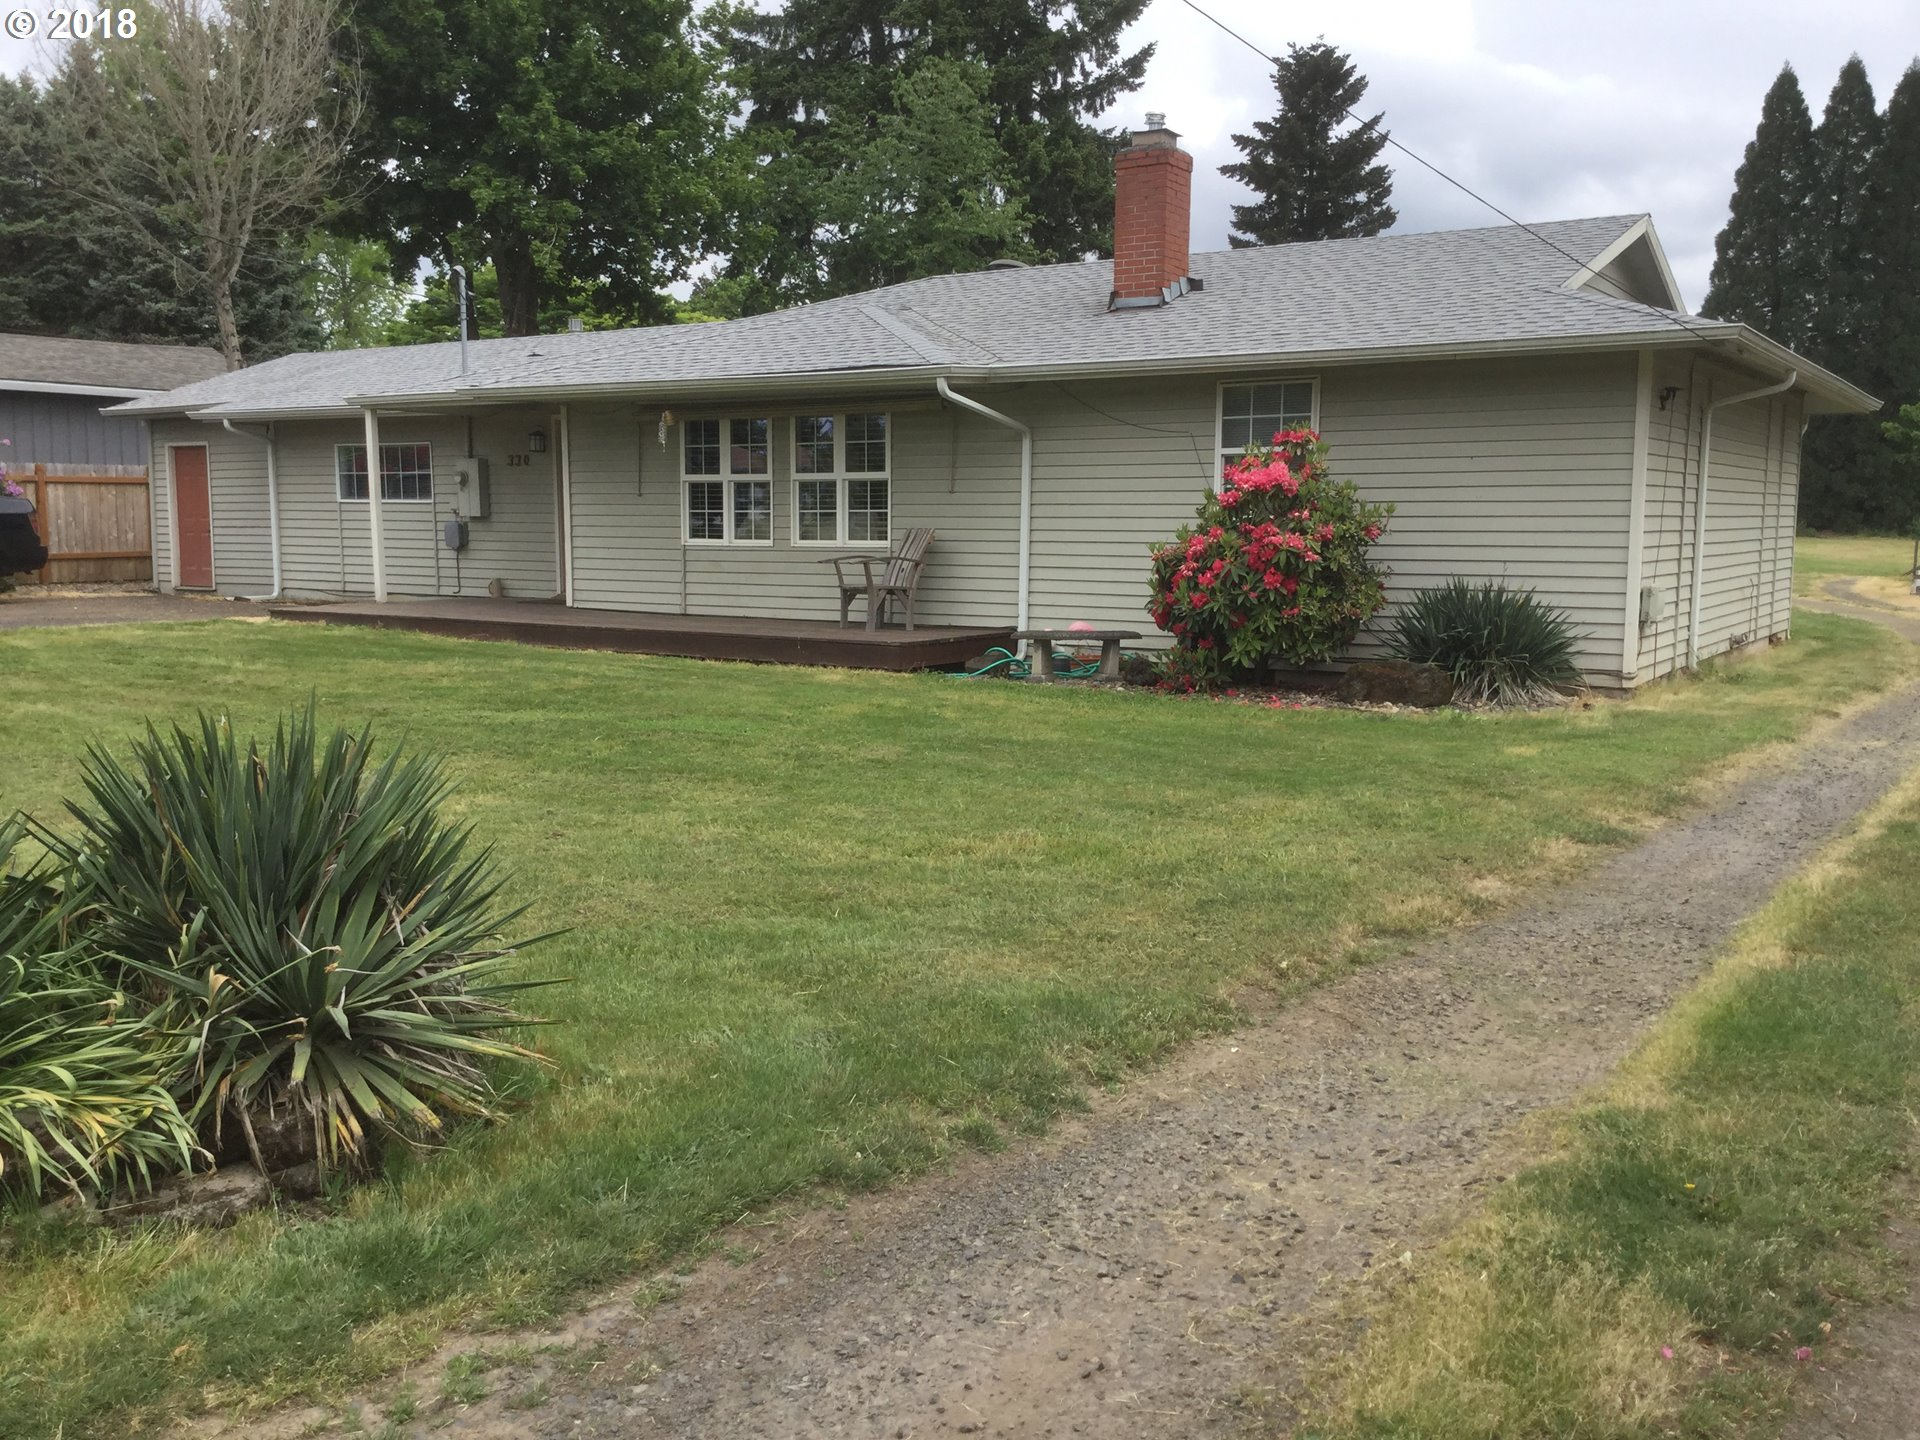 330 NW 341ST AVE, Hillsboro, OR 97124